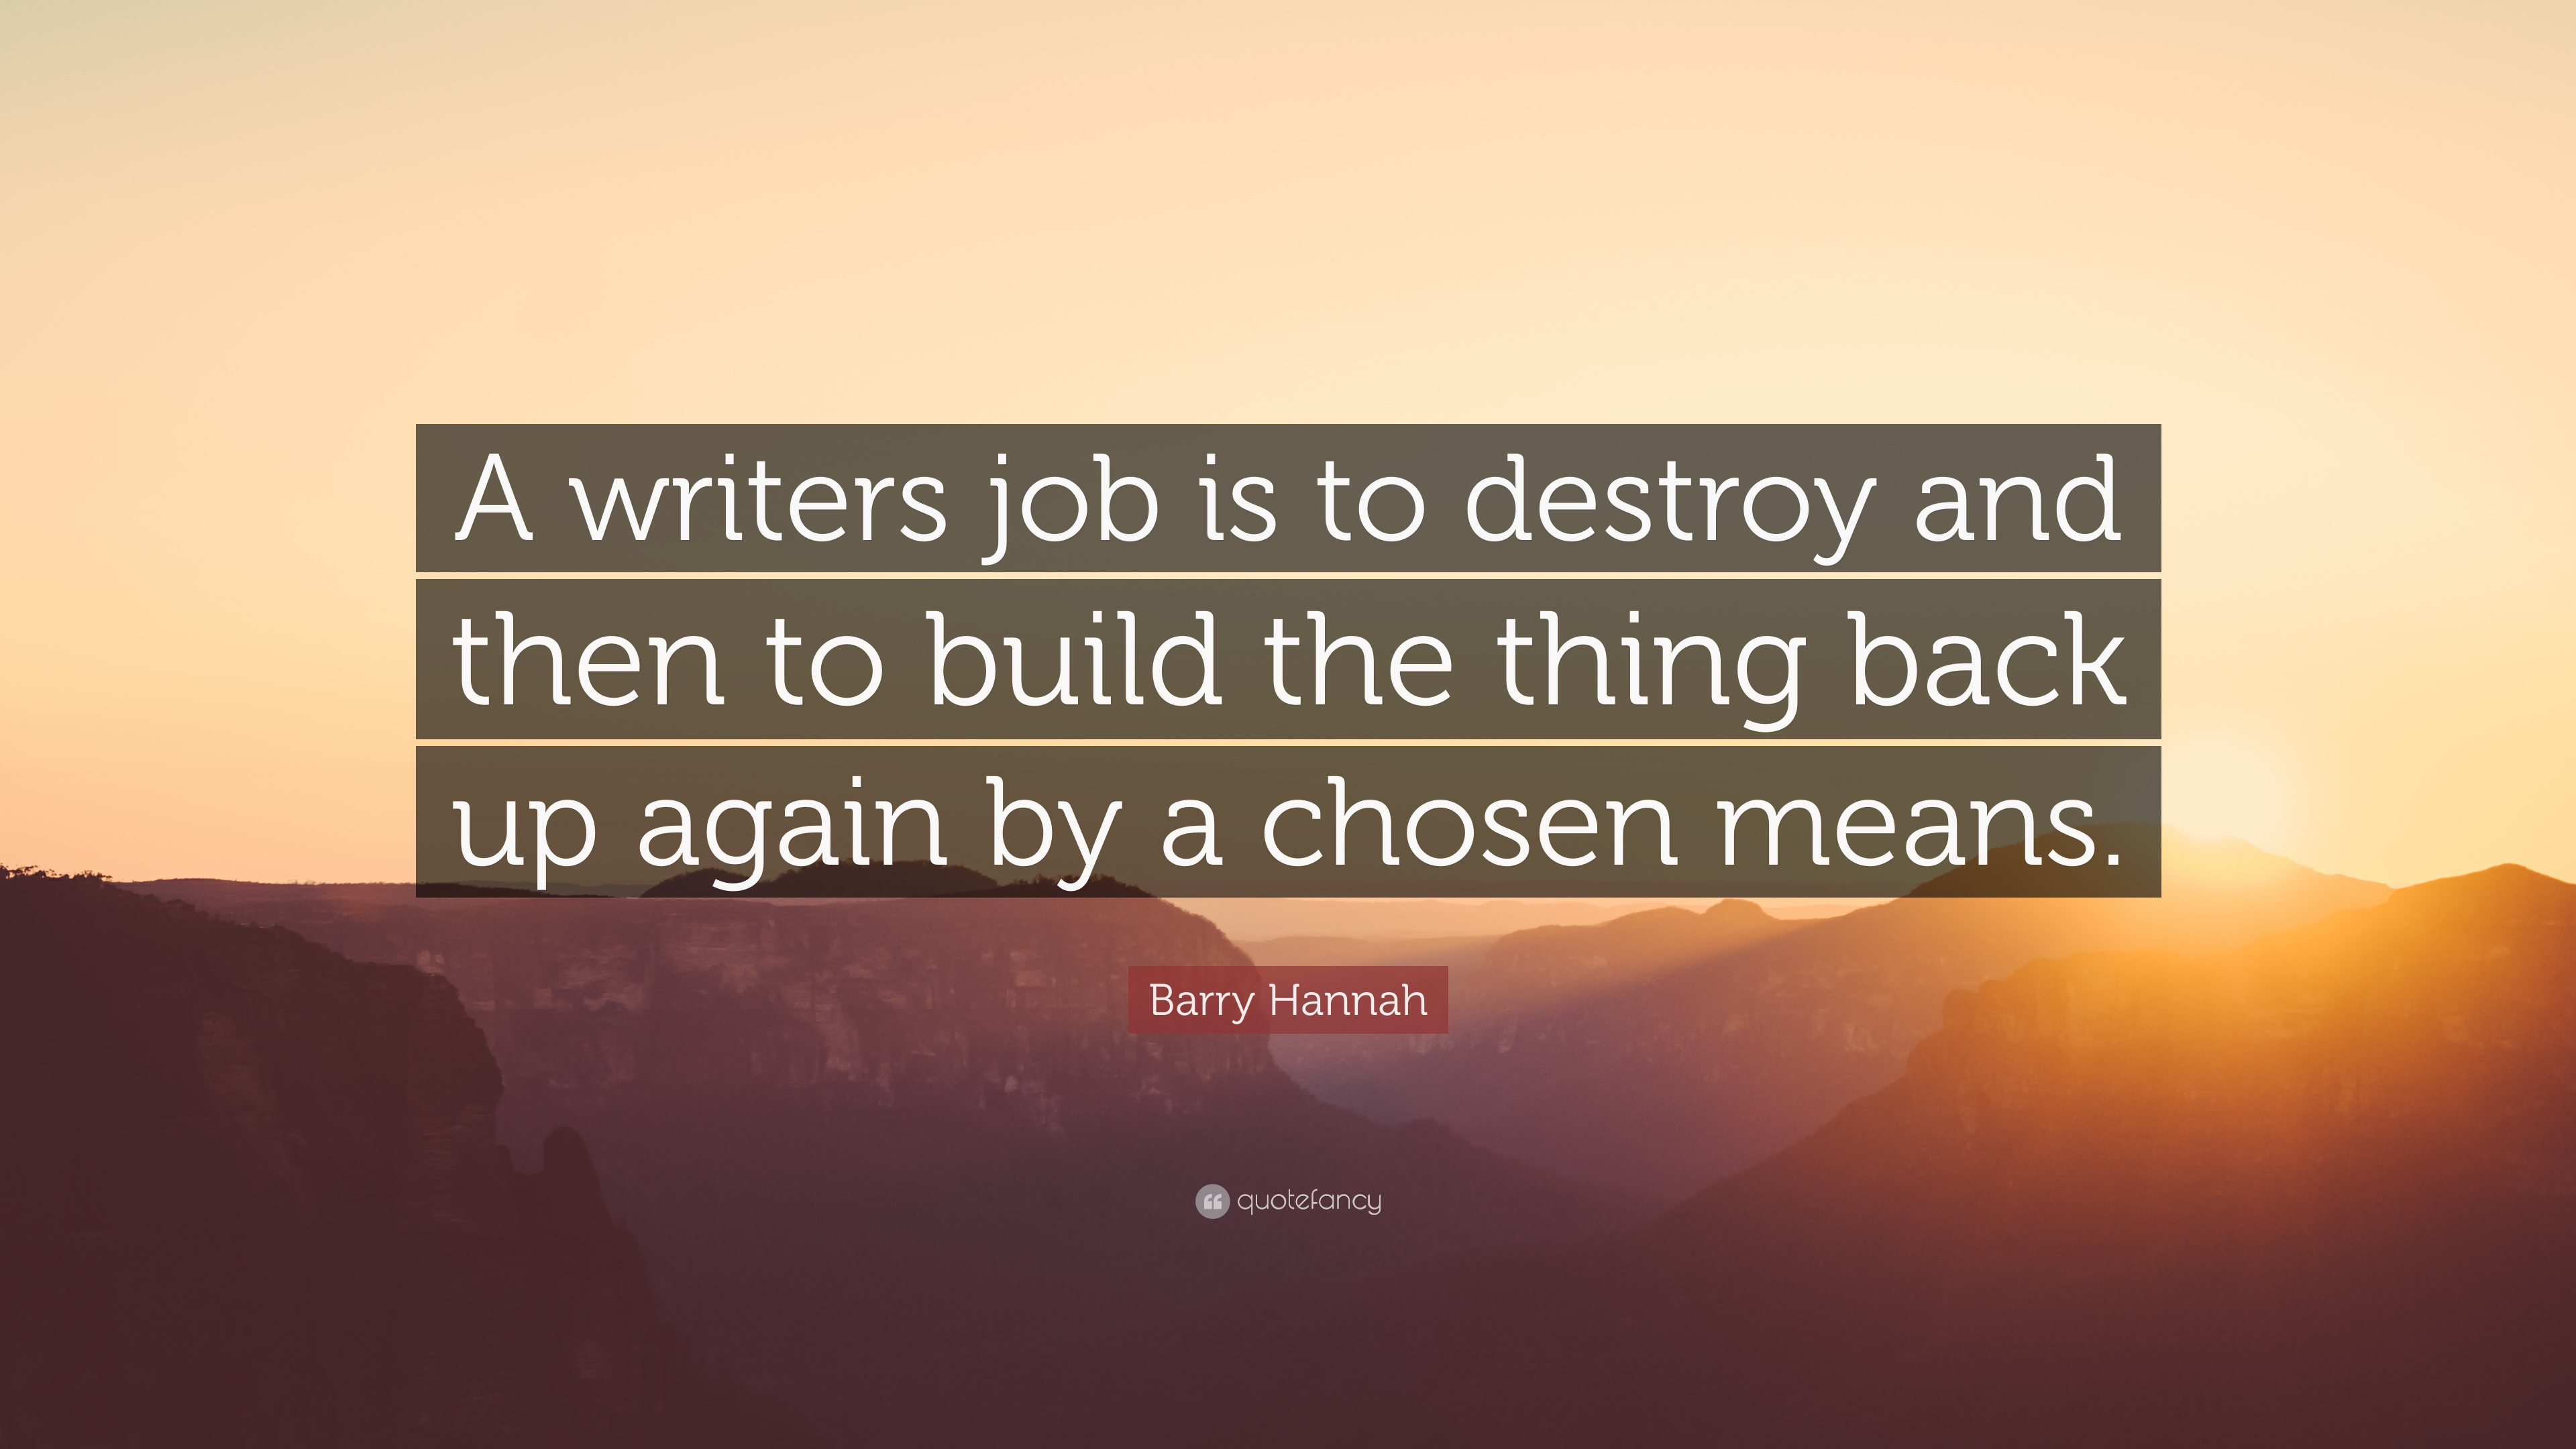 research intern cover letter%0A barry hannah quotes quotefancy barry hannah quote a writers job is to  destroy and then to  Self Help Writing Trades Resume